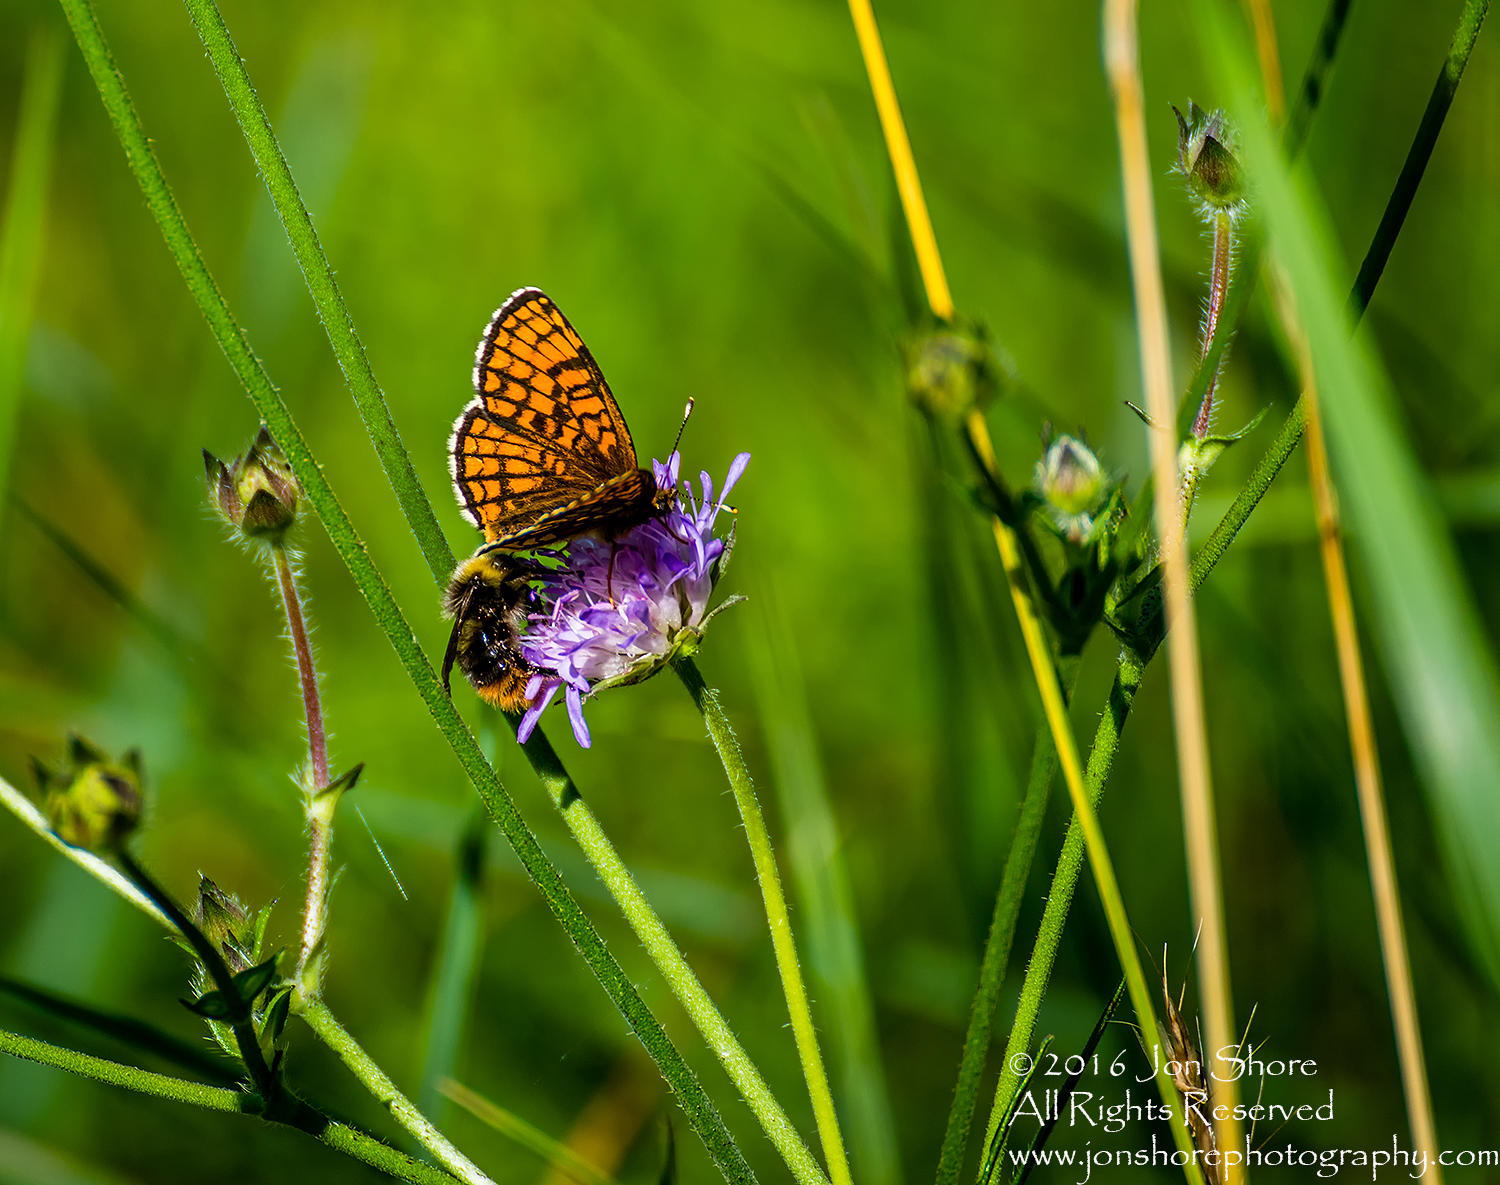 Butterfly and Bee on flower. Tamron 300mm